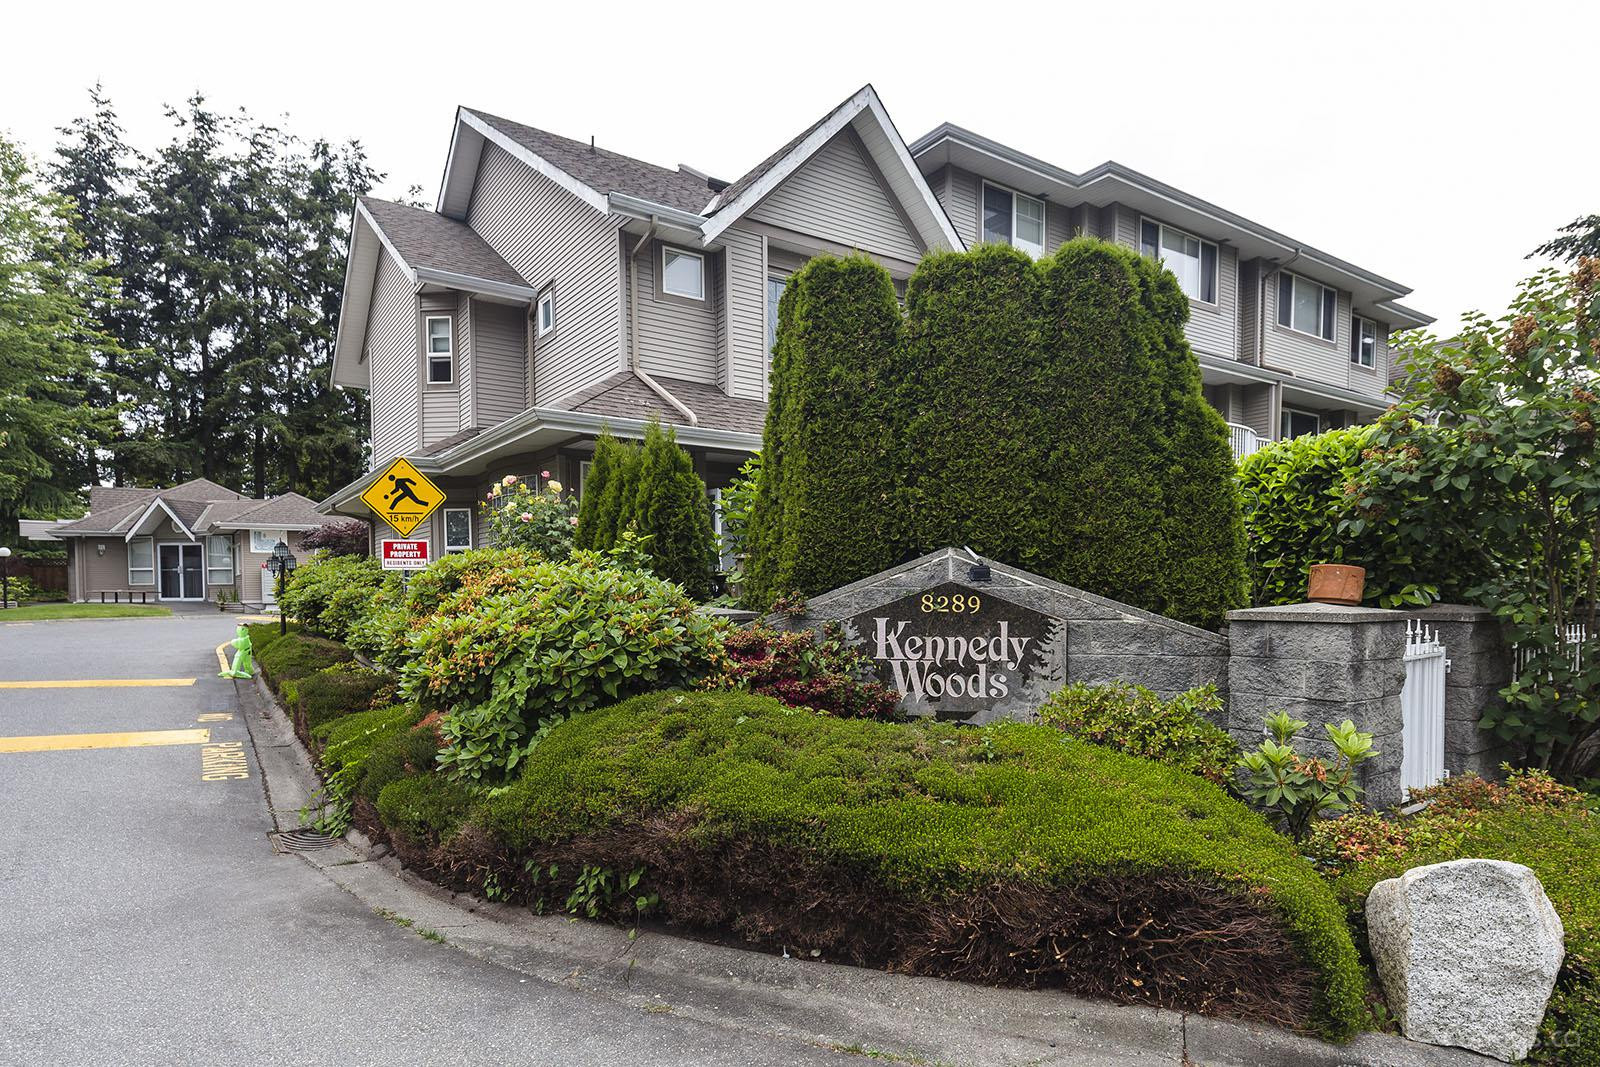 Kennedy Woods at 8289 121A St, Surrey 1